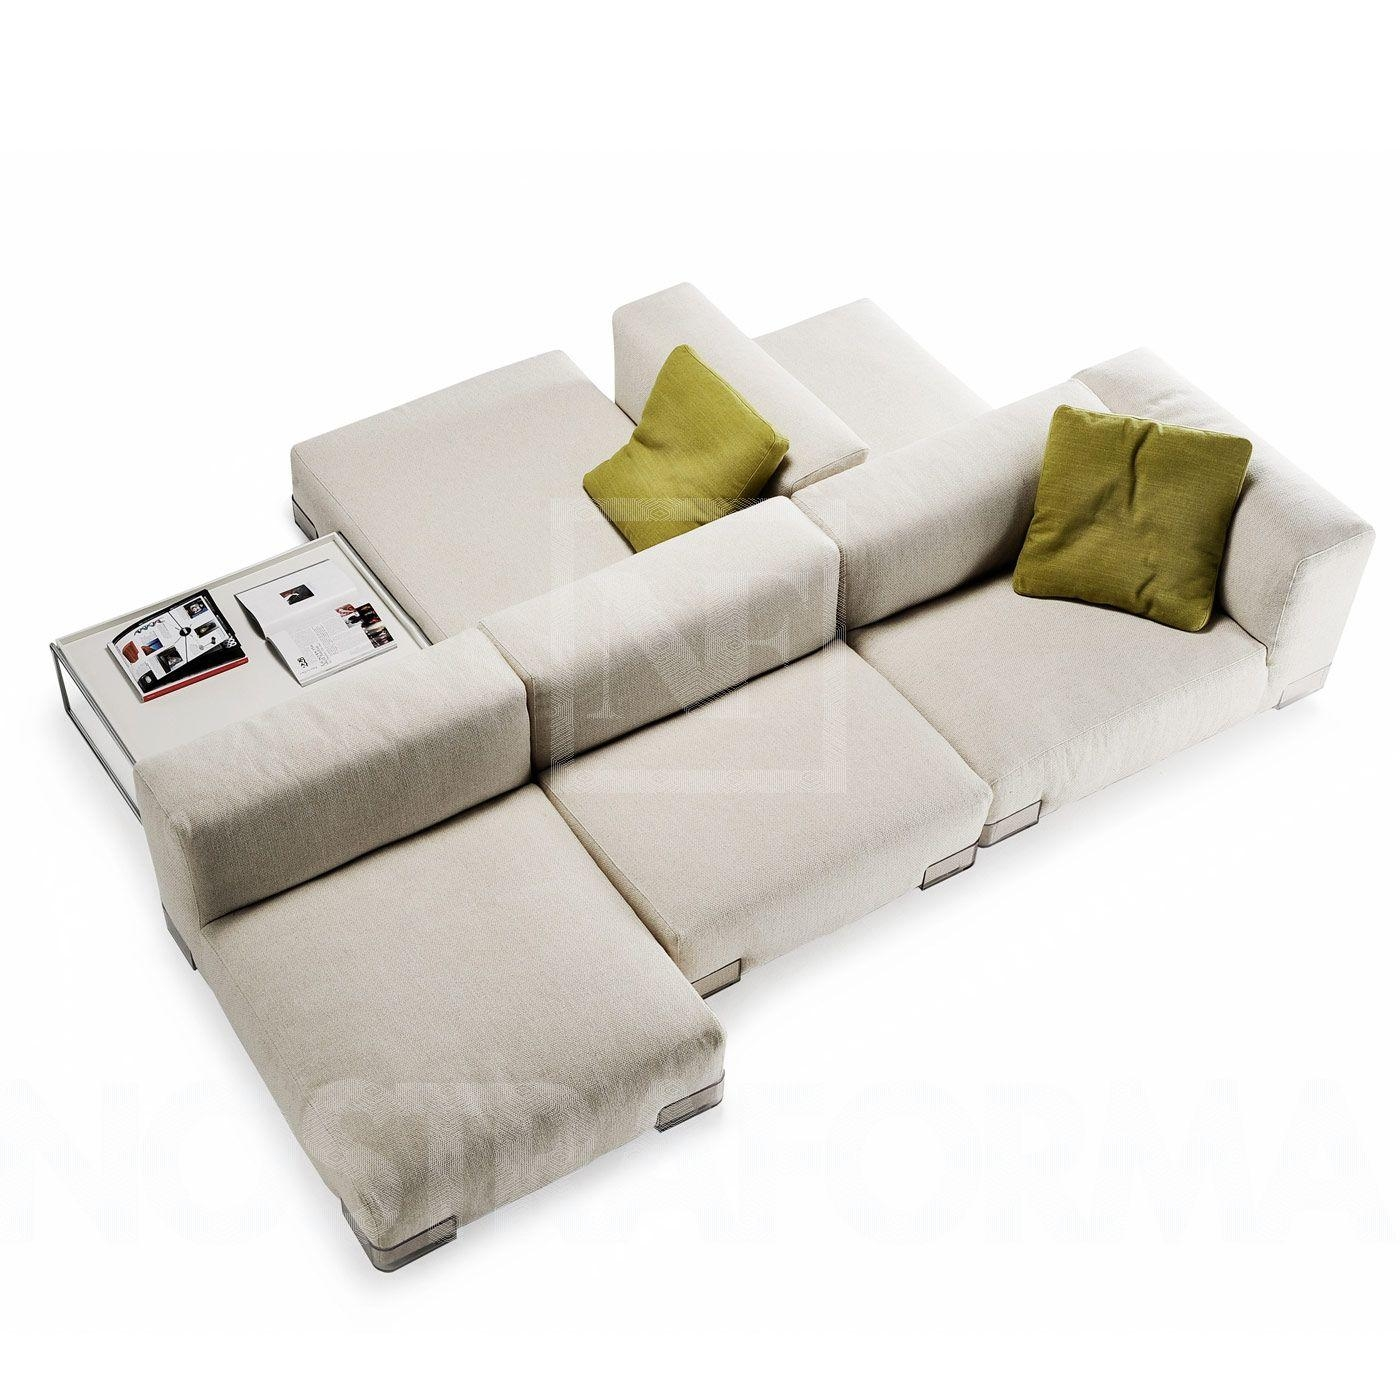 Furniture: Double Sided Sofa | Build A Sectional Sofa | Latest Couches Intended For Sleek Sectional Sofa (View 18 of 20)